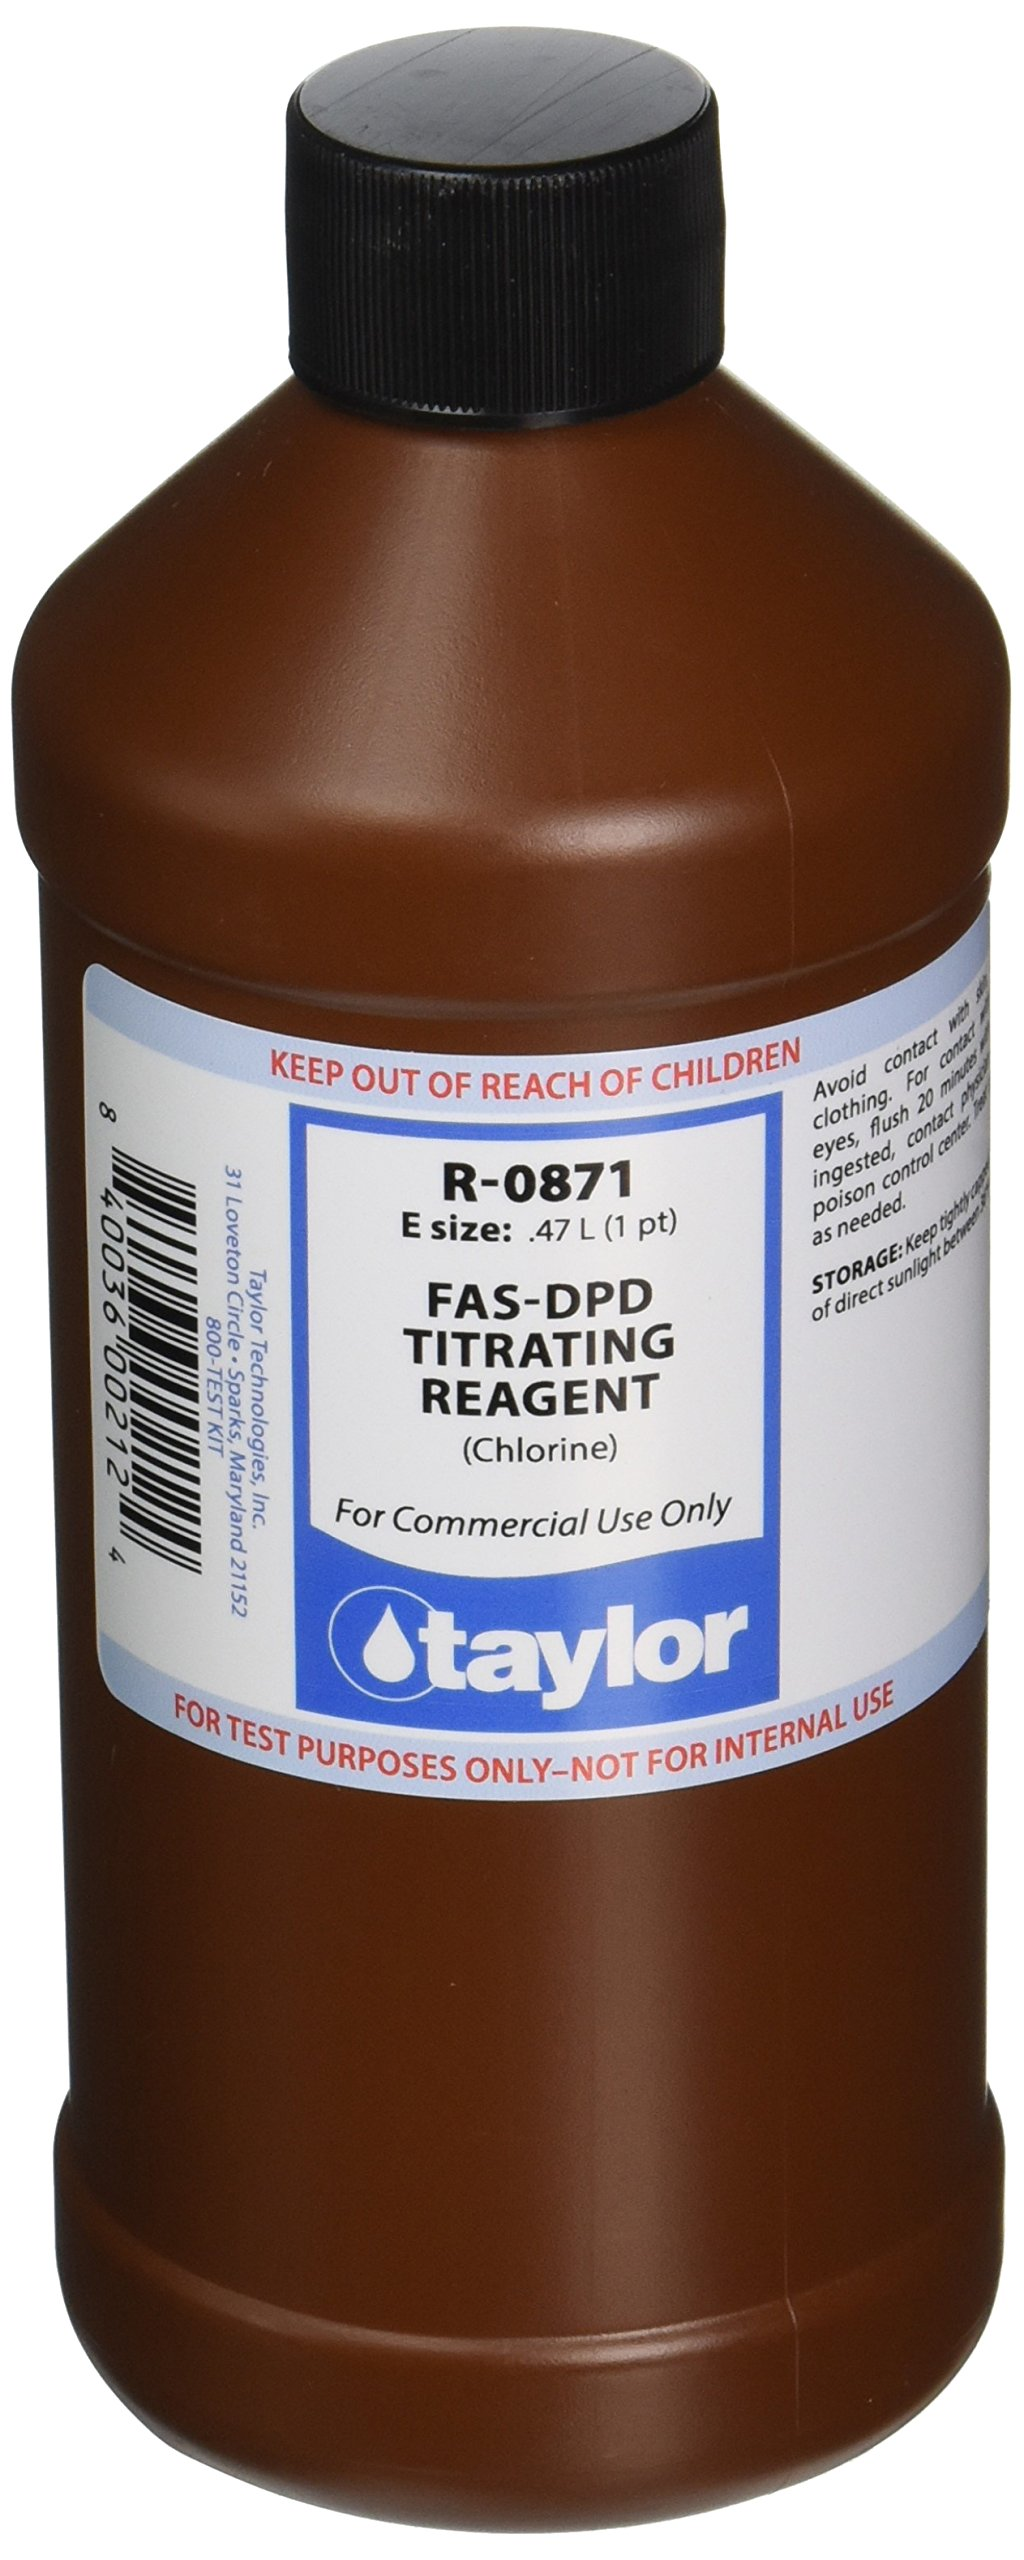 TAYLOR TECHNOLOGIES INC R-0871-E FAS-DPD TITRATING 16 OZ by TAYLOR TECHNOLOGIES INC